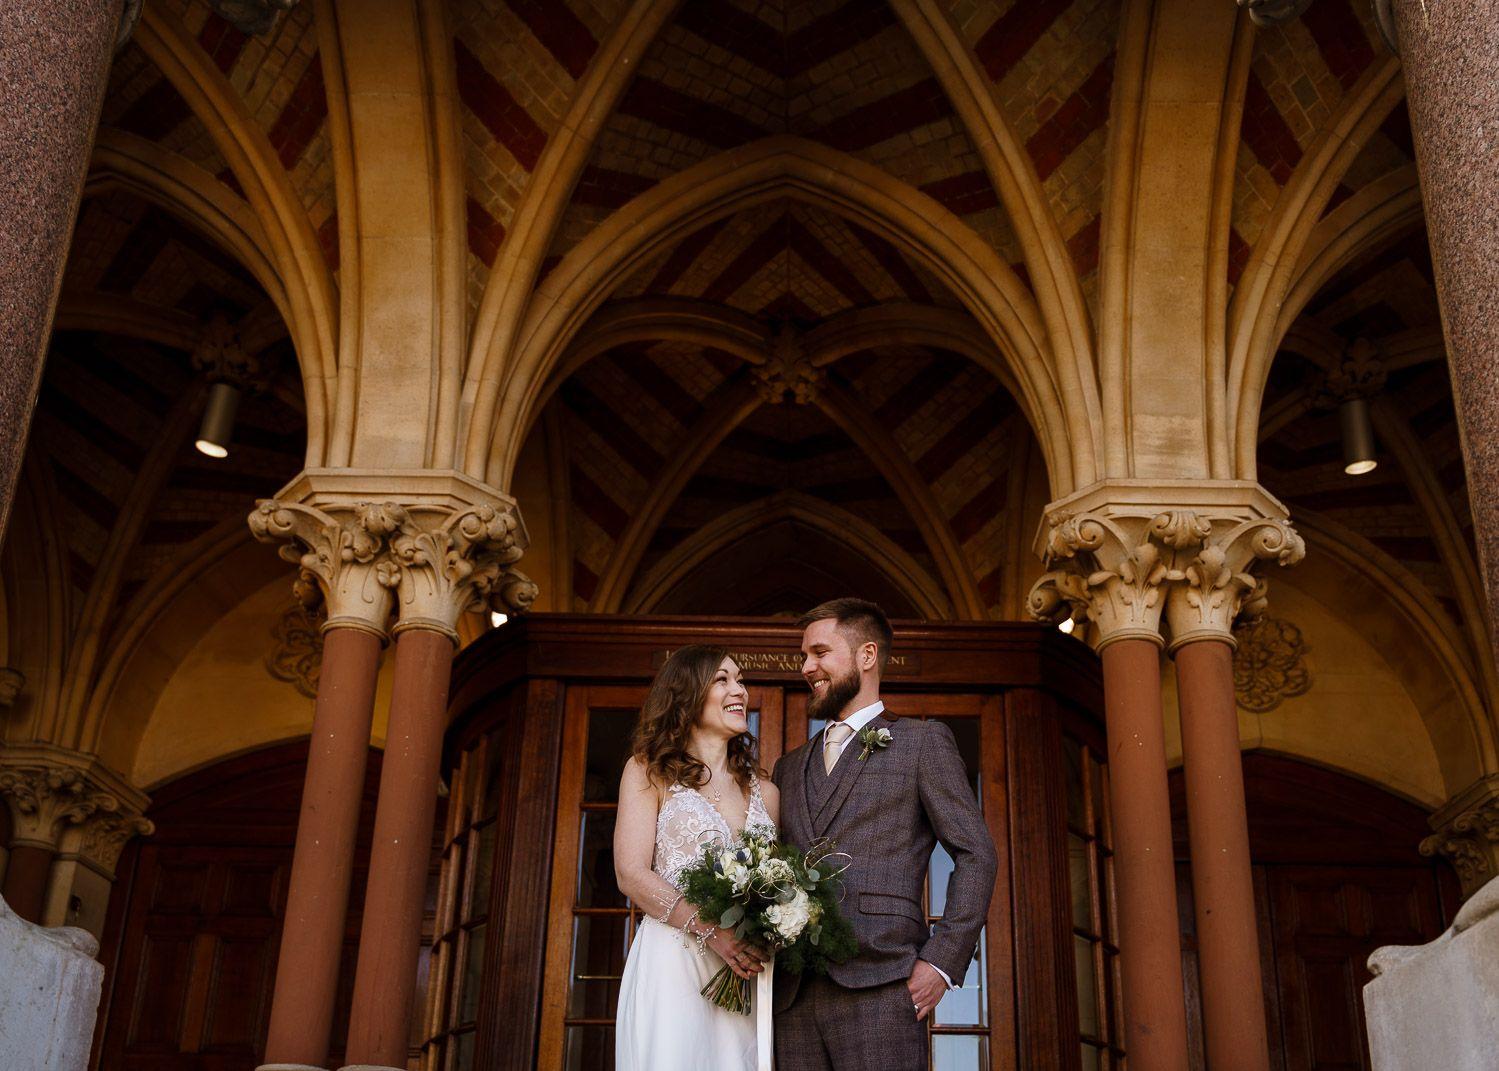 A newlywed bride and groom stand together under the grand arches of Winchester Guildhall after their Hampshire wedding.